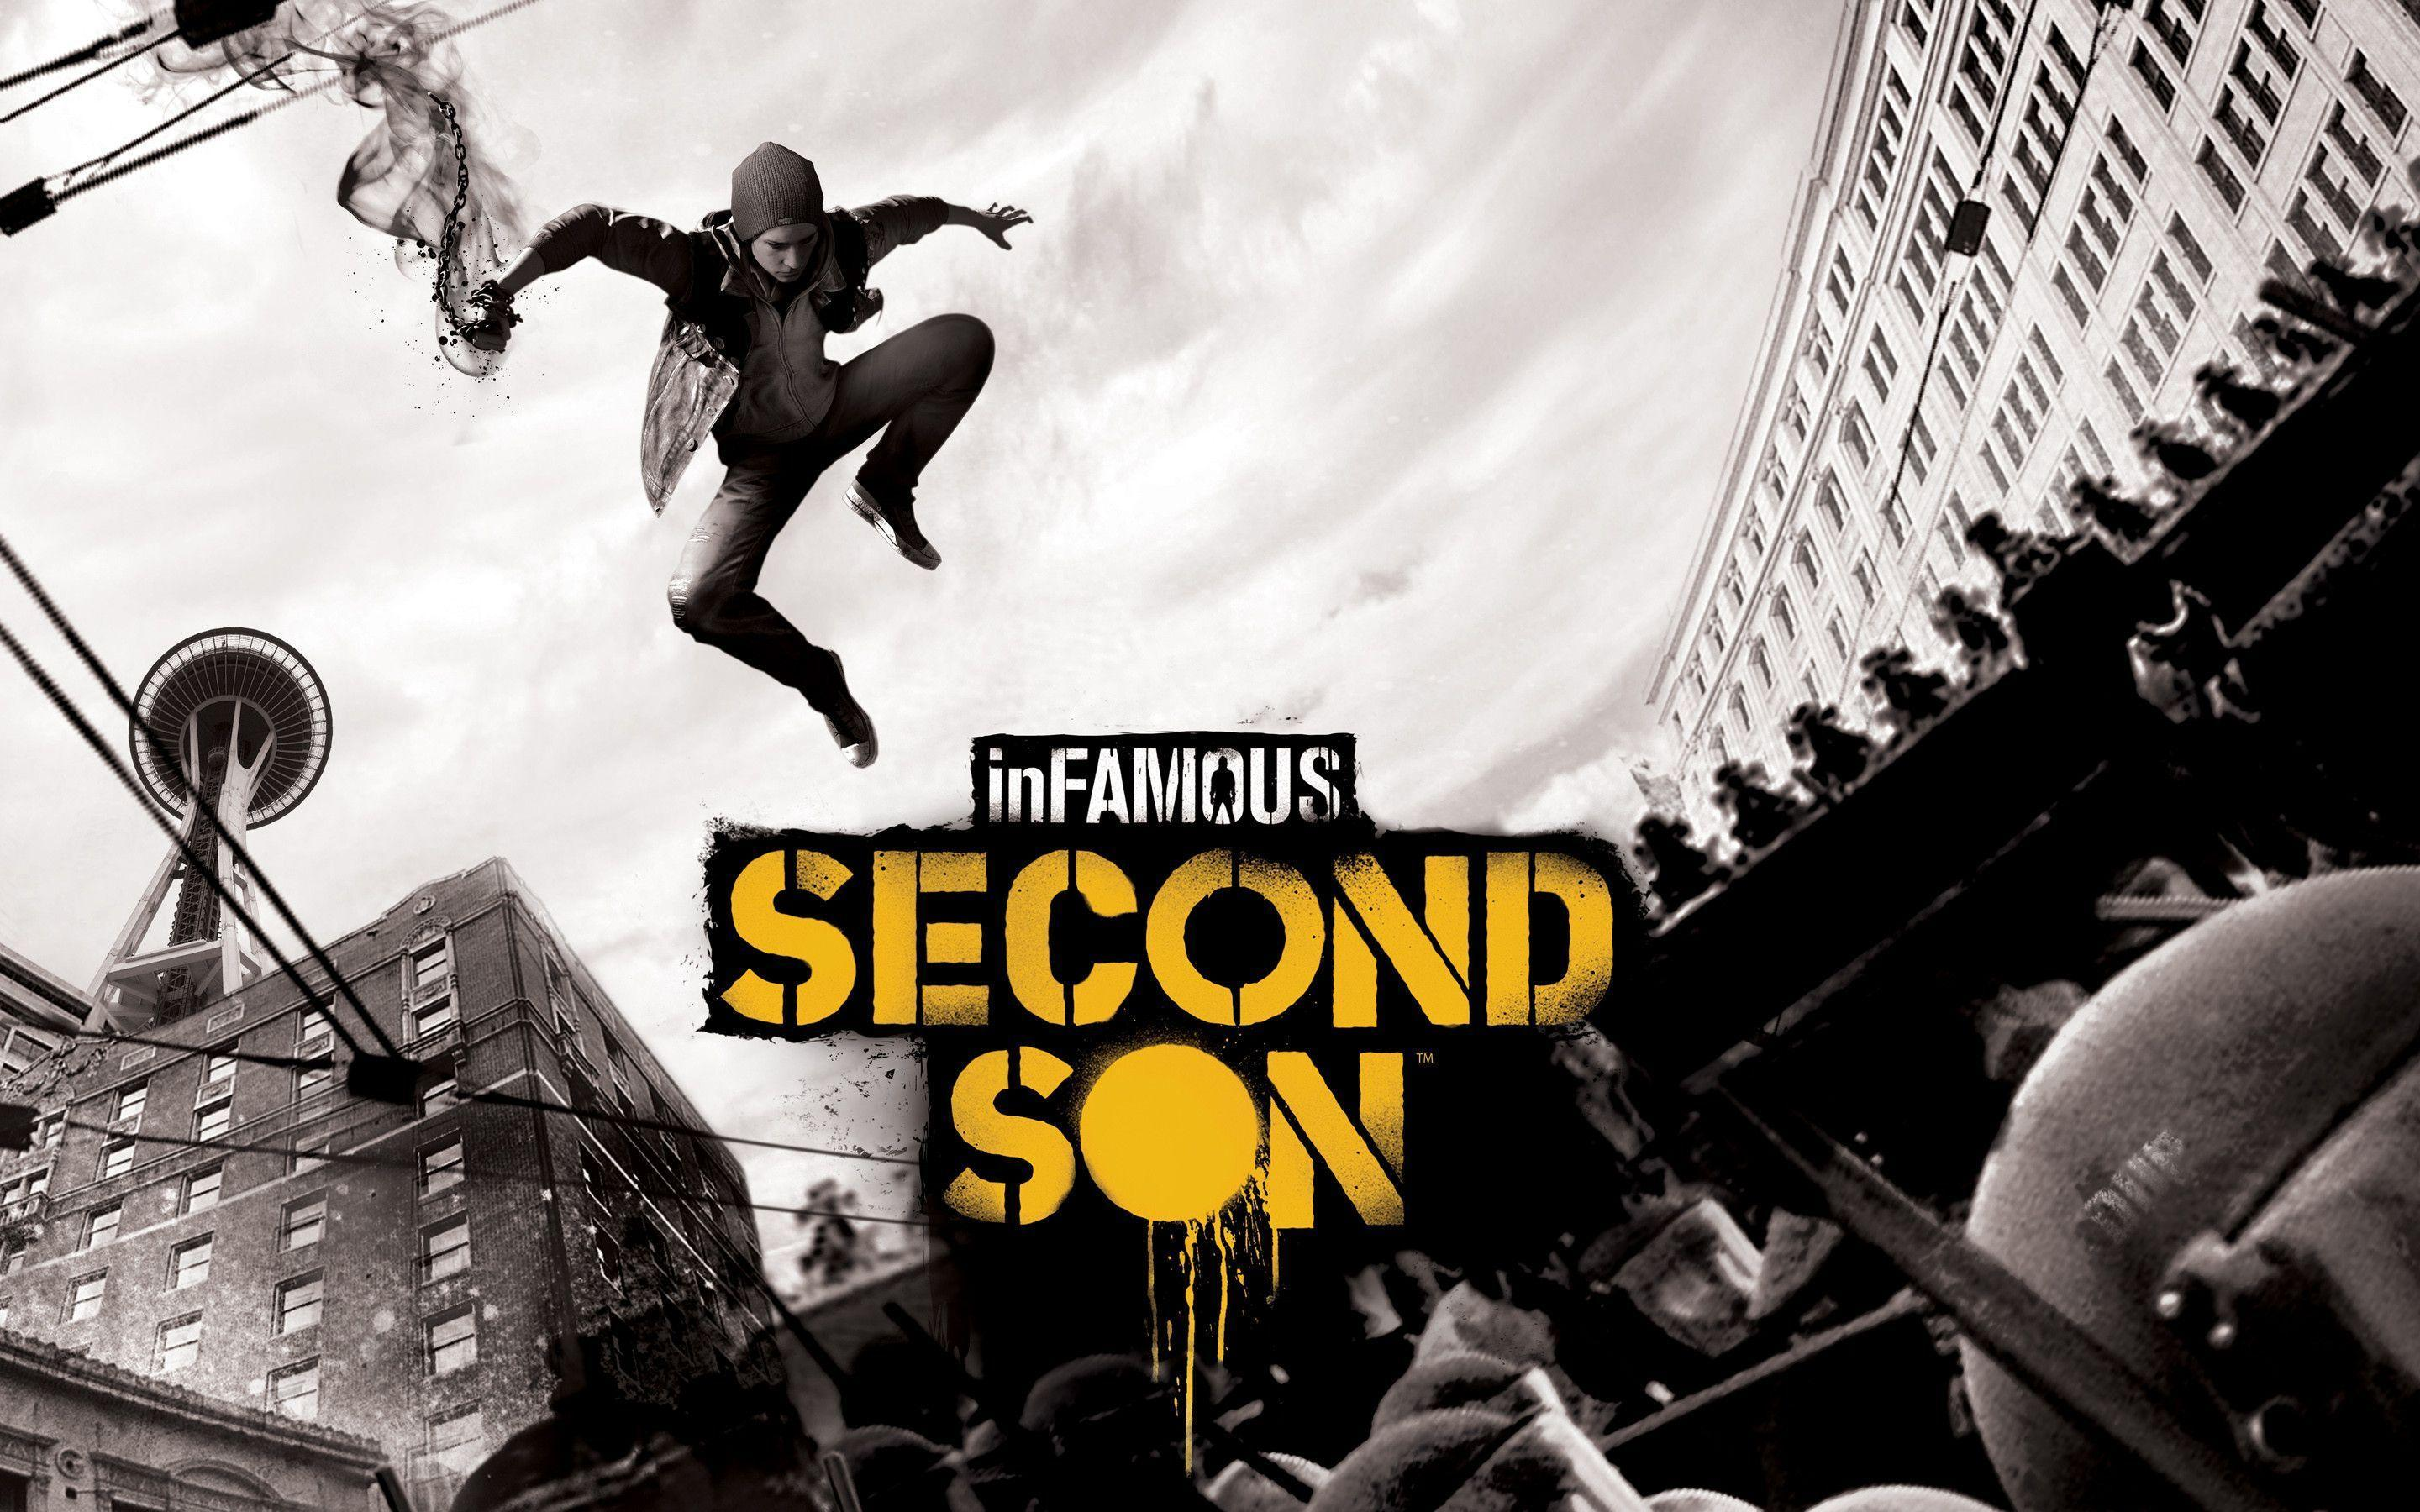 inFAMOUS Second Son Wallpapers